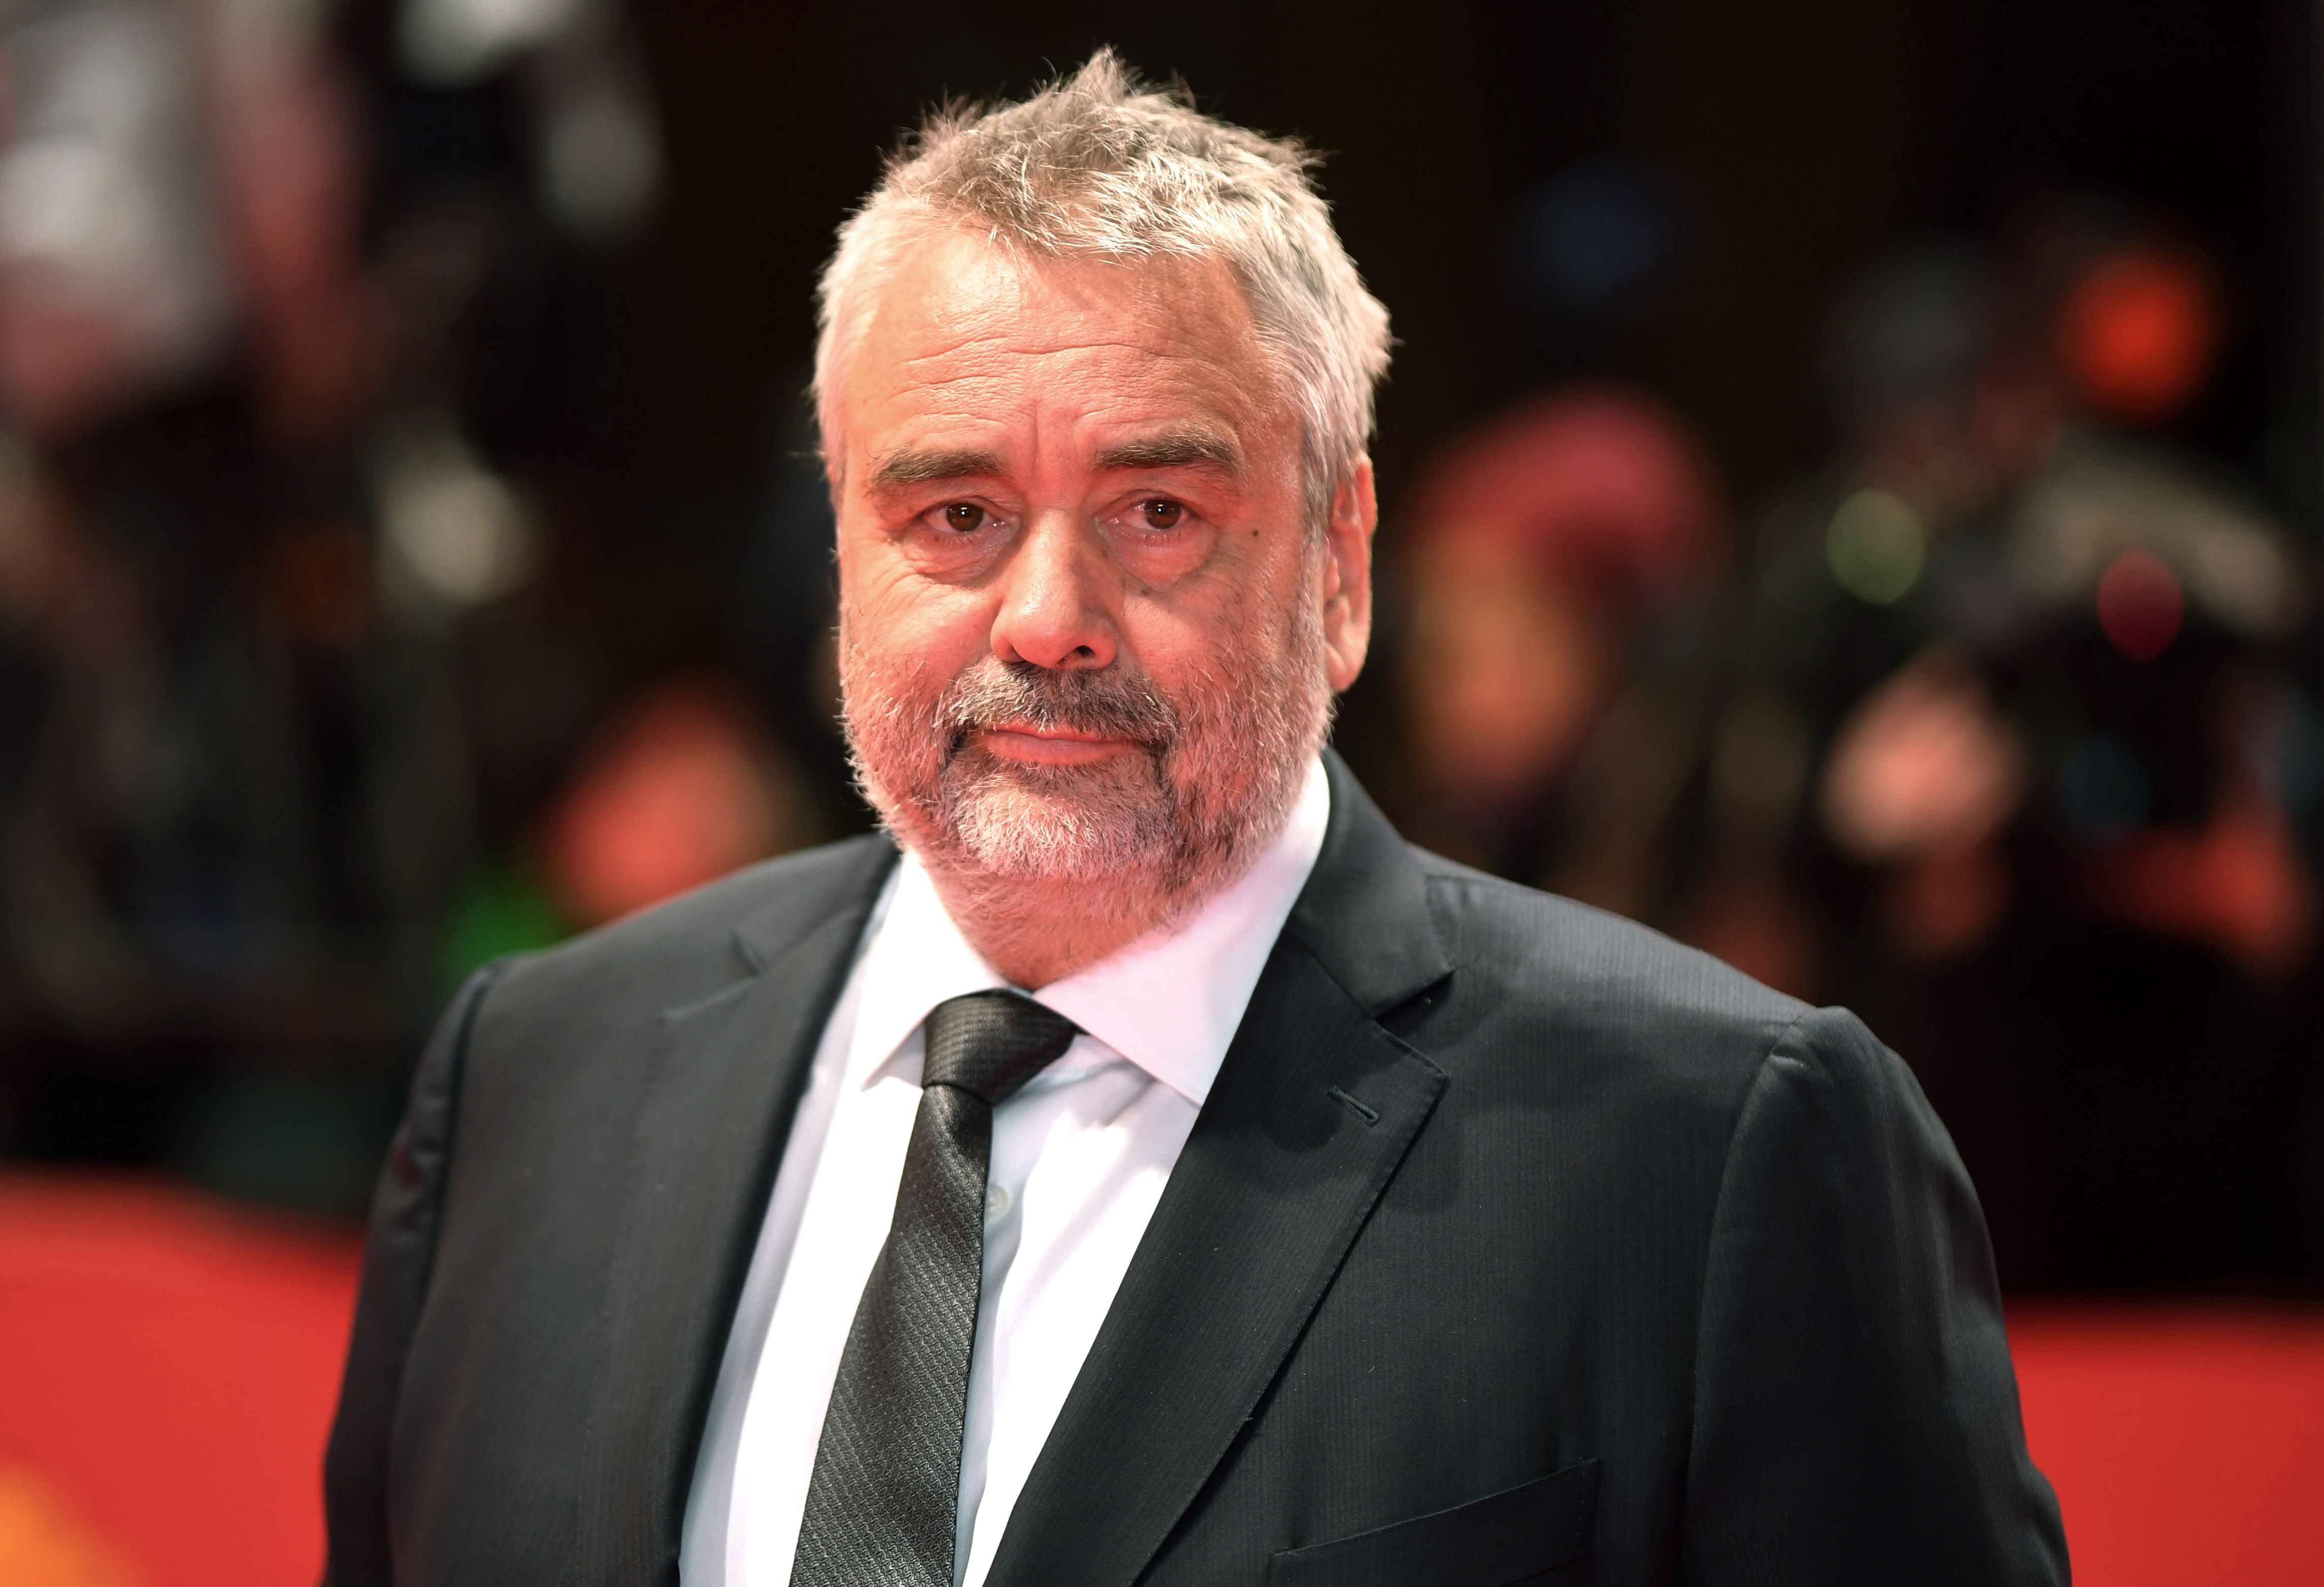 Luc Besson's filmography